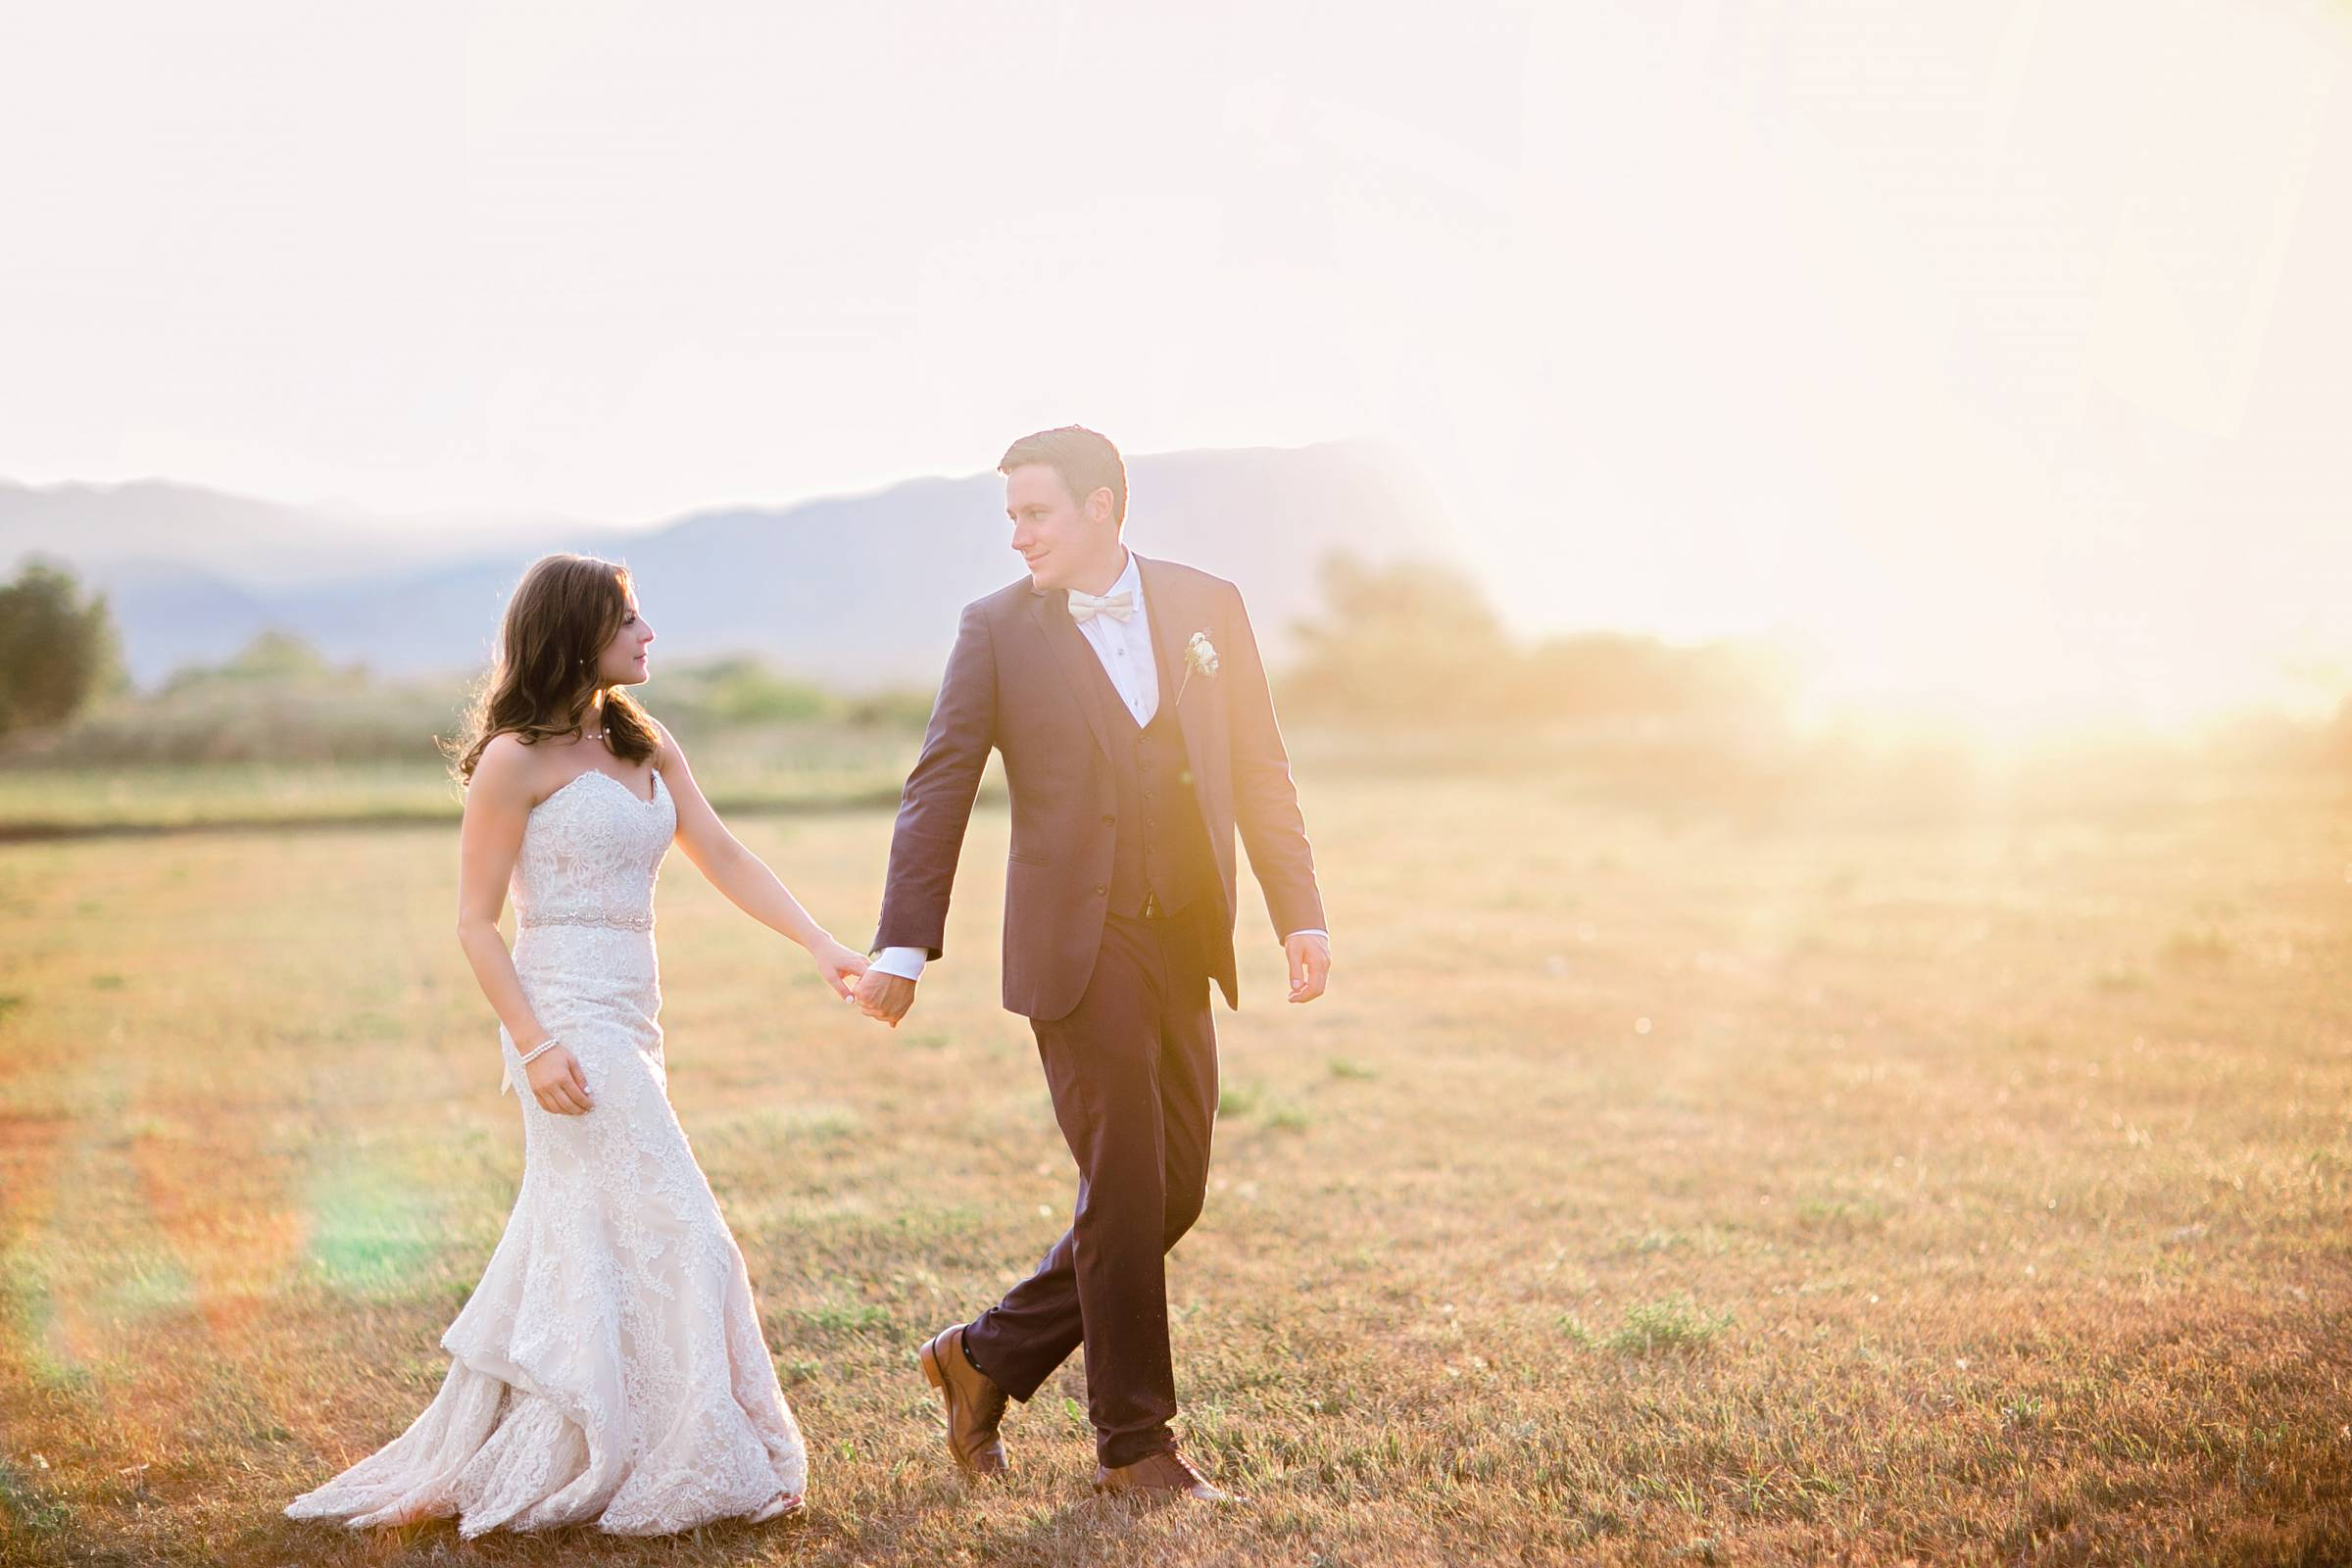 Rocky Mountain sunset photo of bride and groom | Colorado wedding planned by Revel & Roots Events |